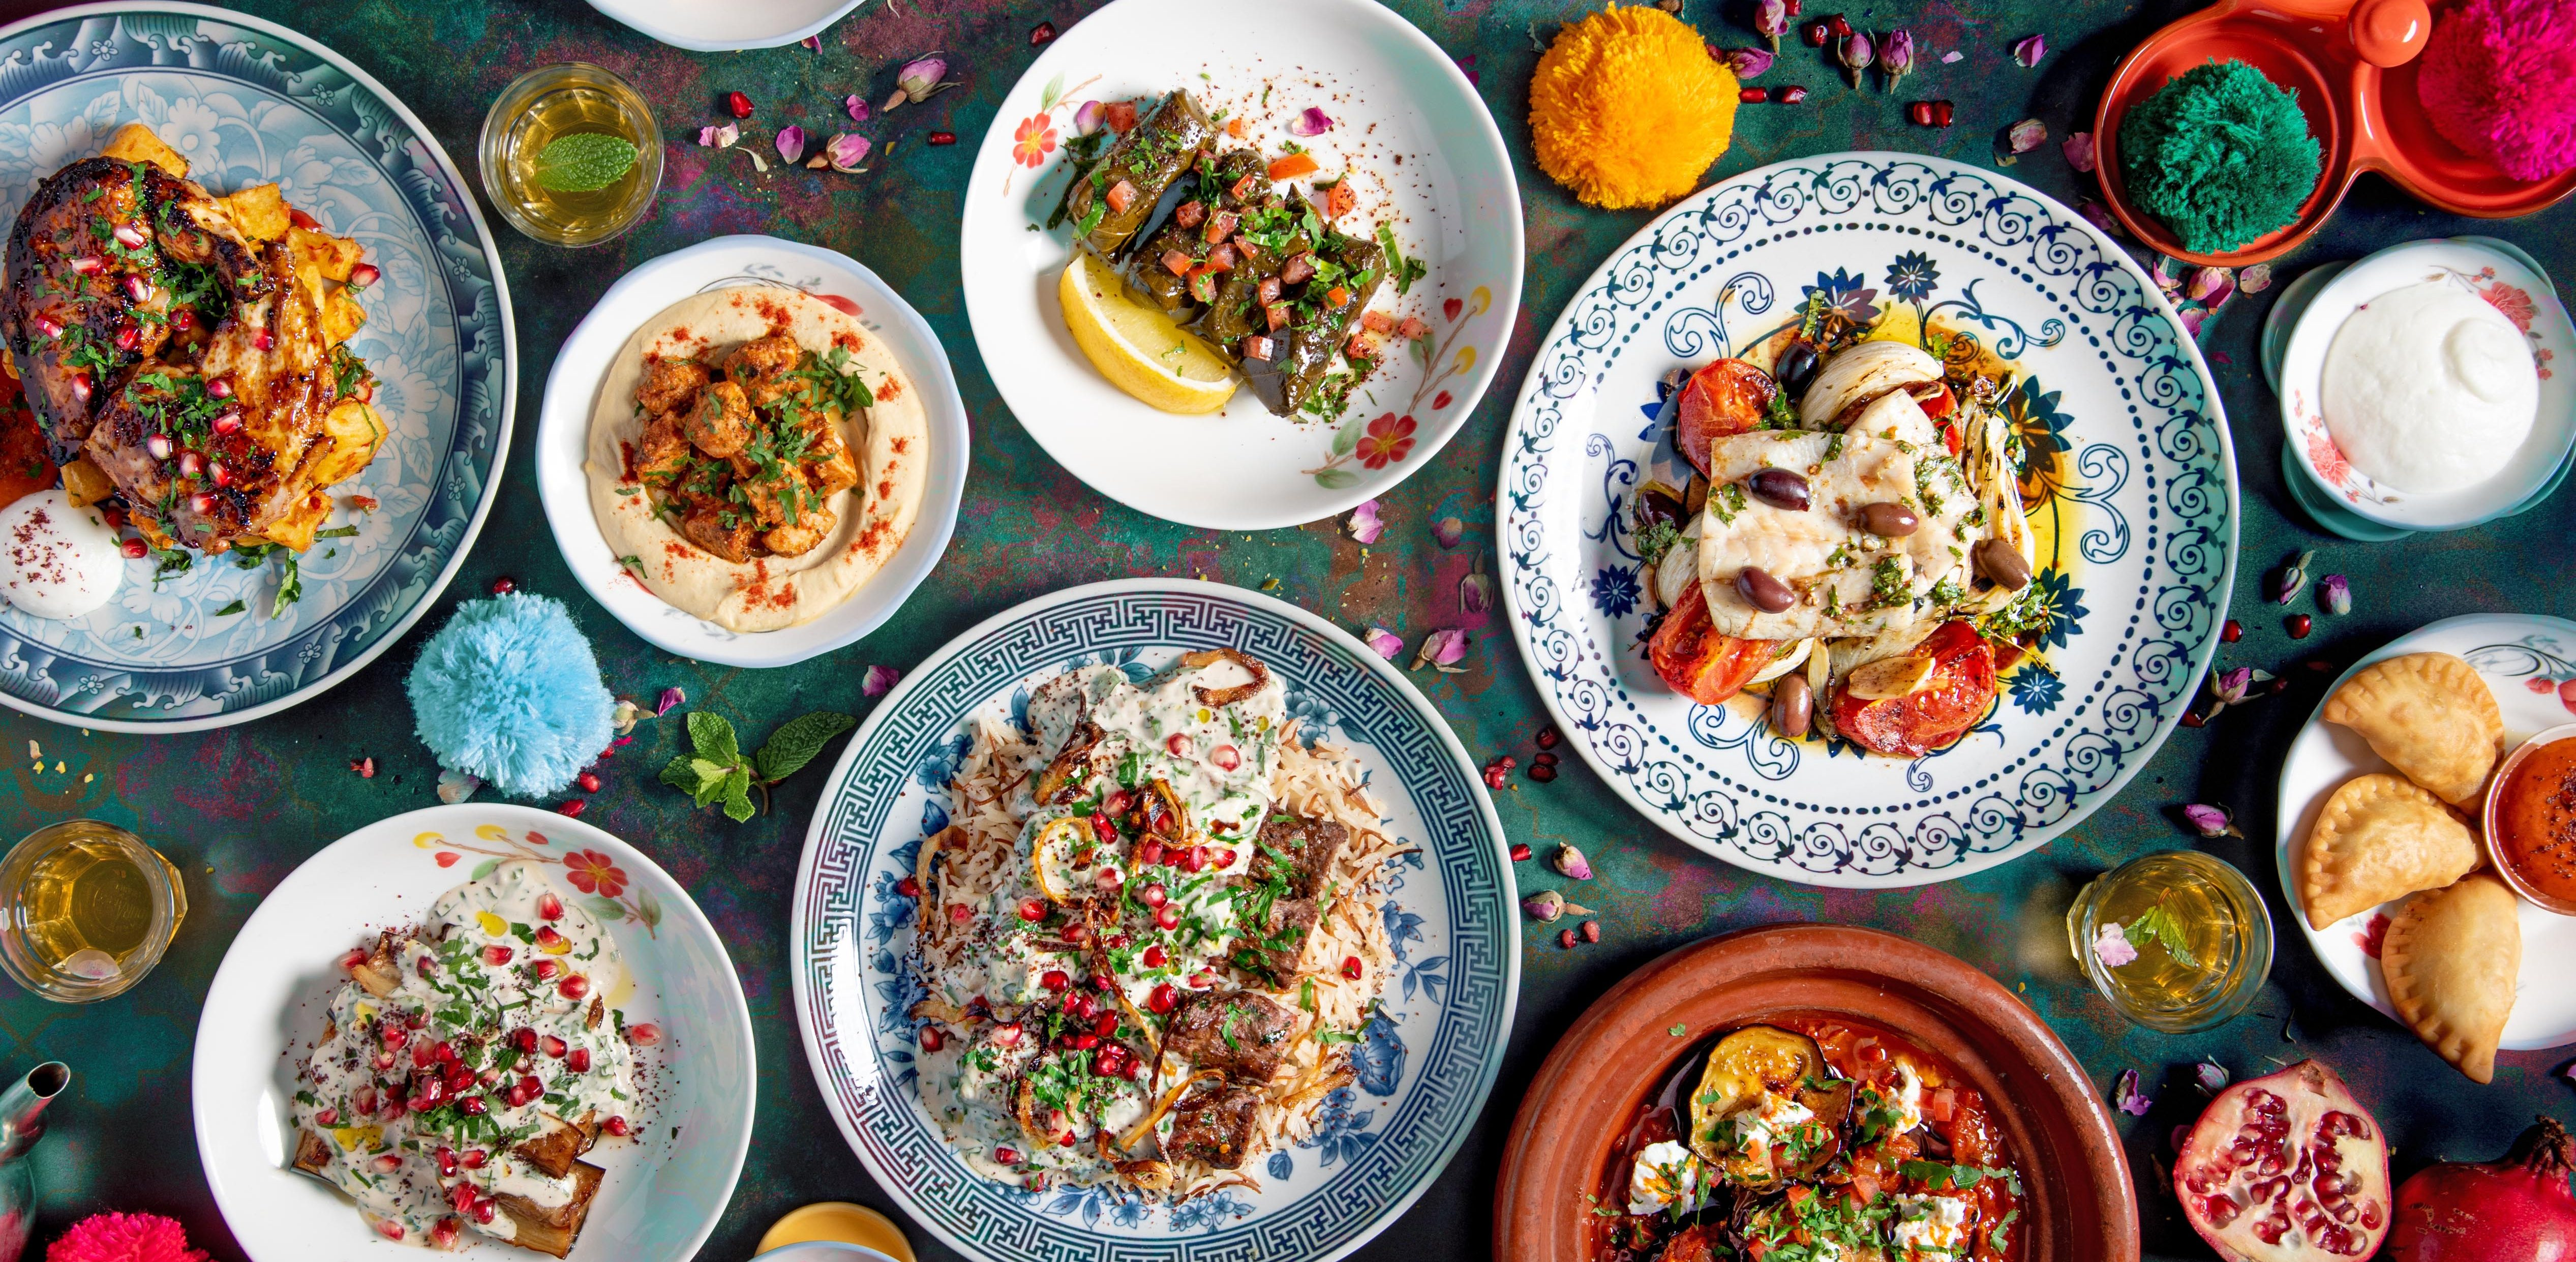 Lebanese eatery Comptoir Libanais launches its Christmas feasting menu